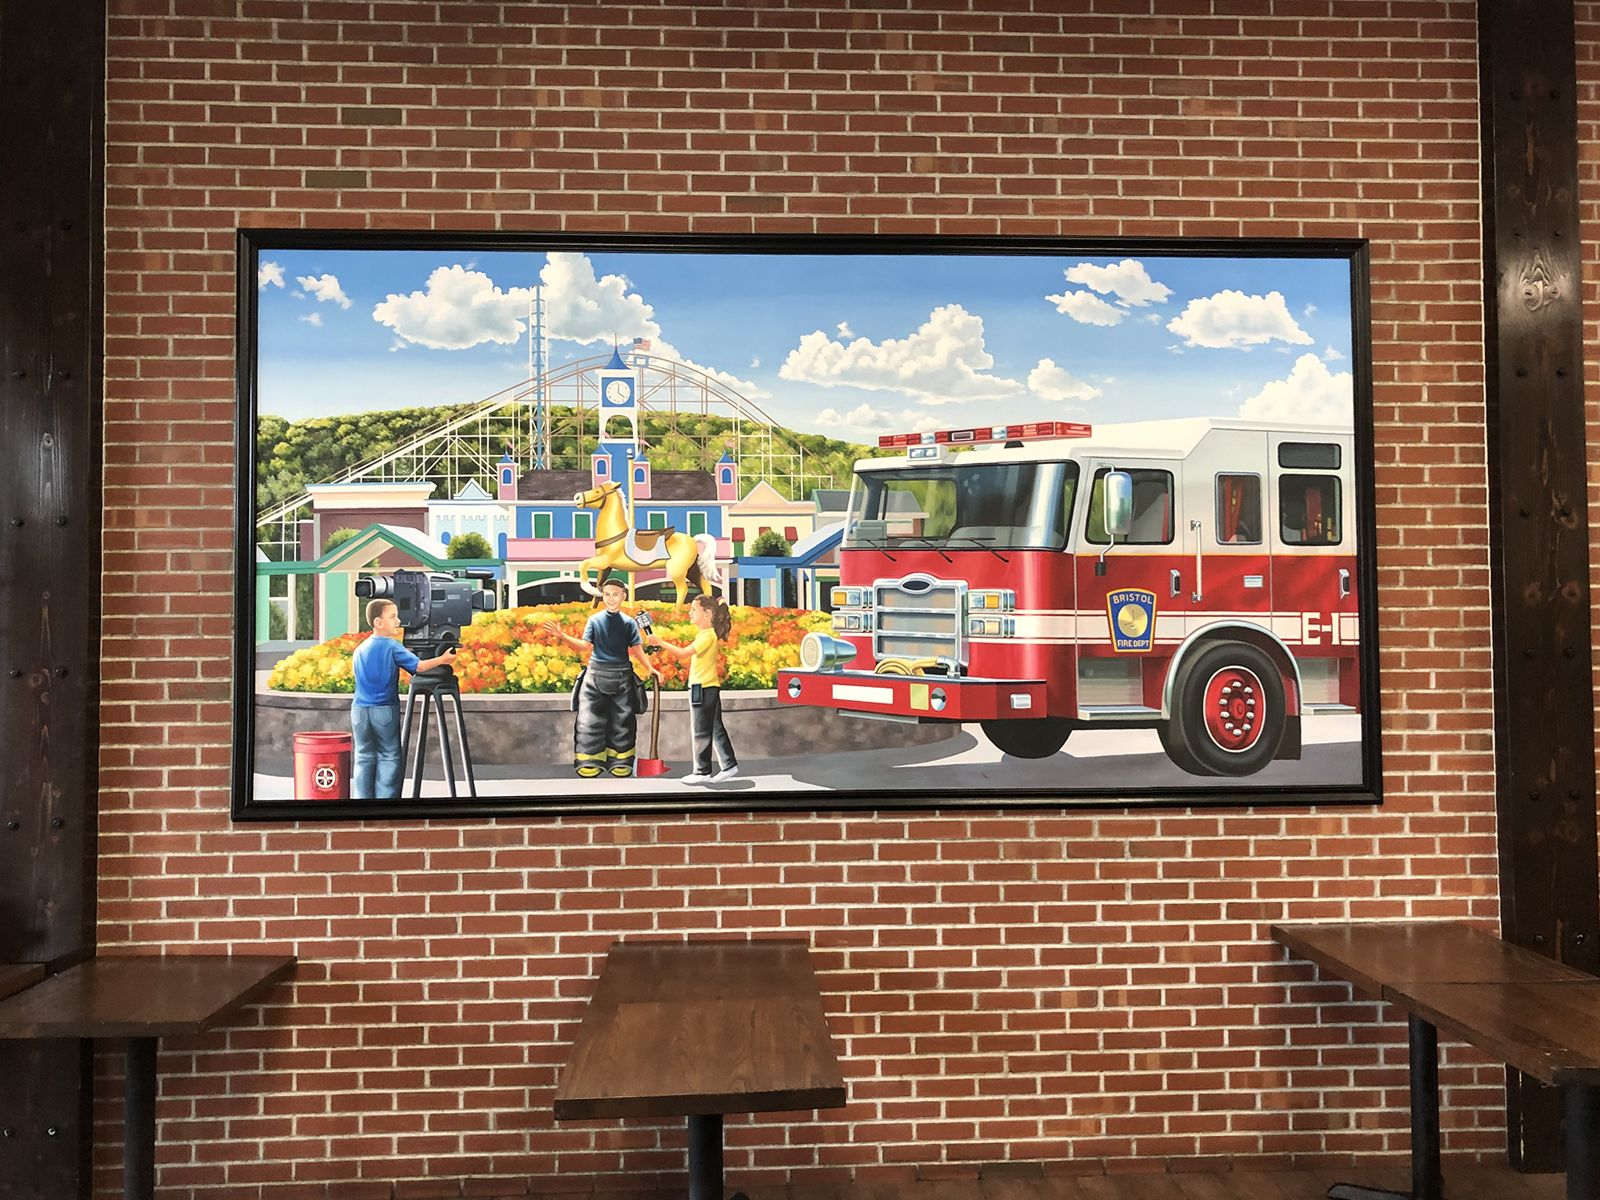 From General Manager to Franchisee, Local Entrepreneurs Reignite the Fire in Bristol With Firehouse Subs Opening